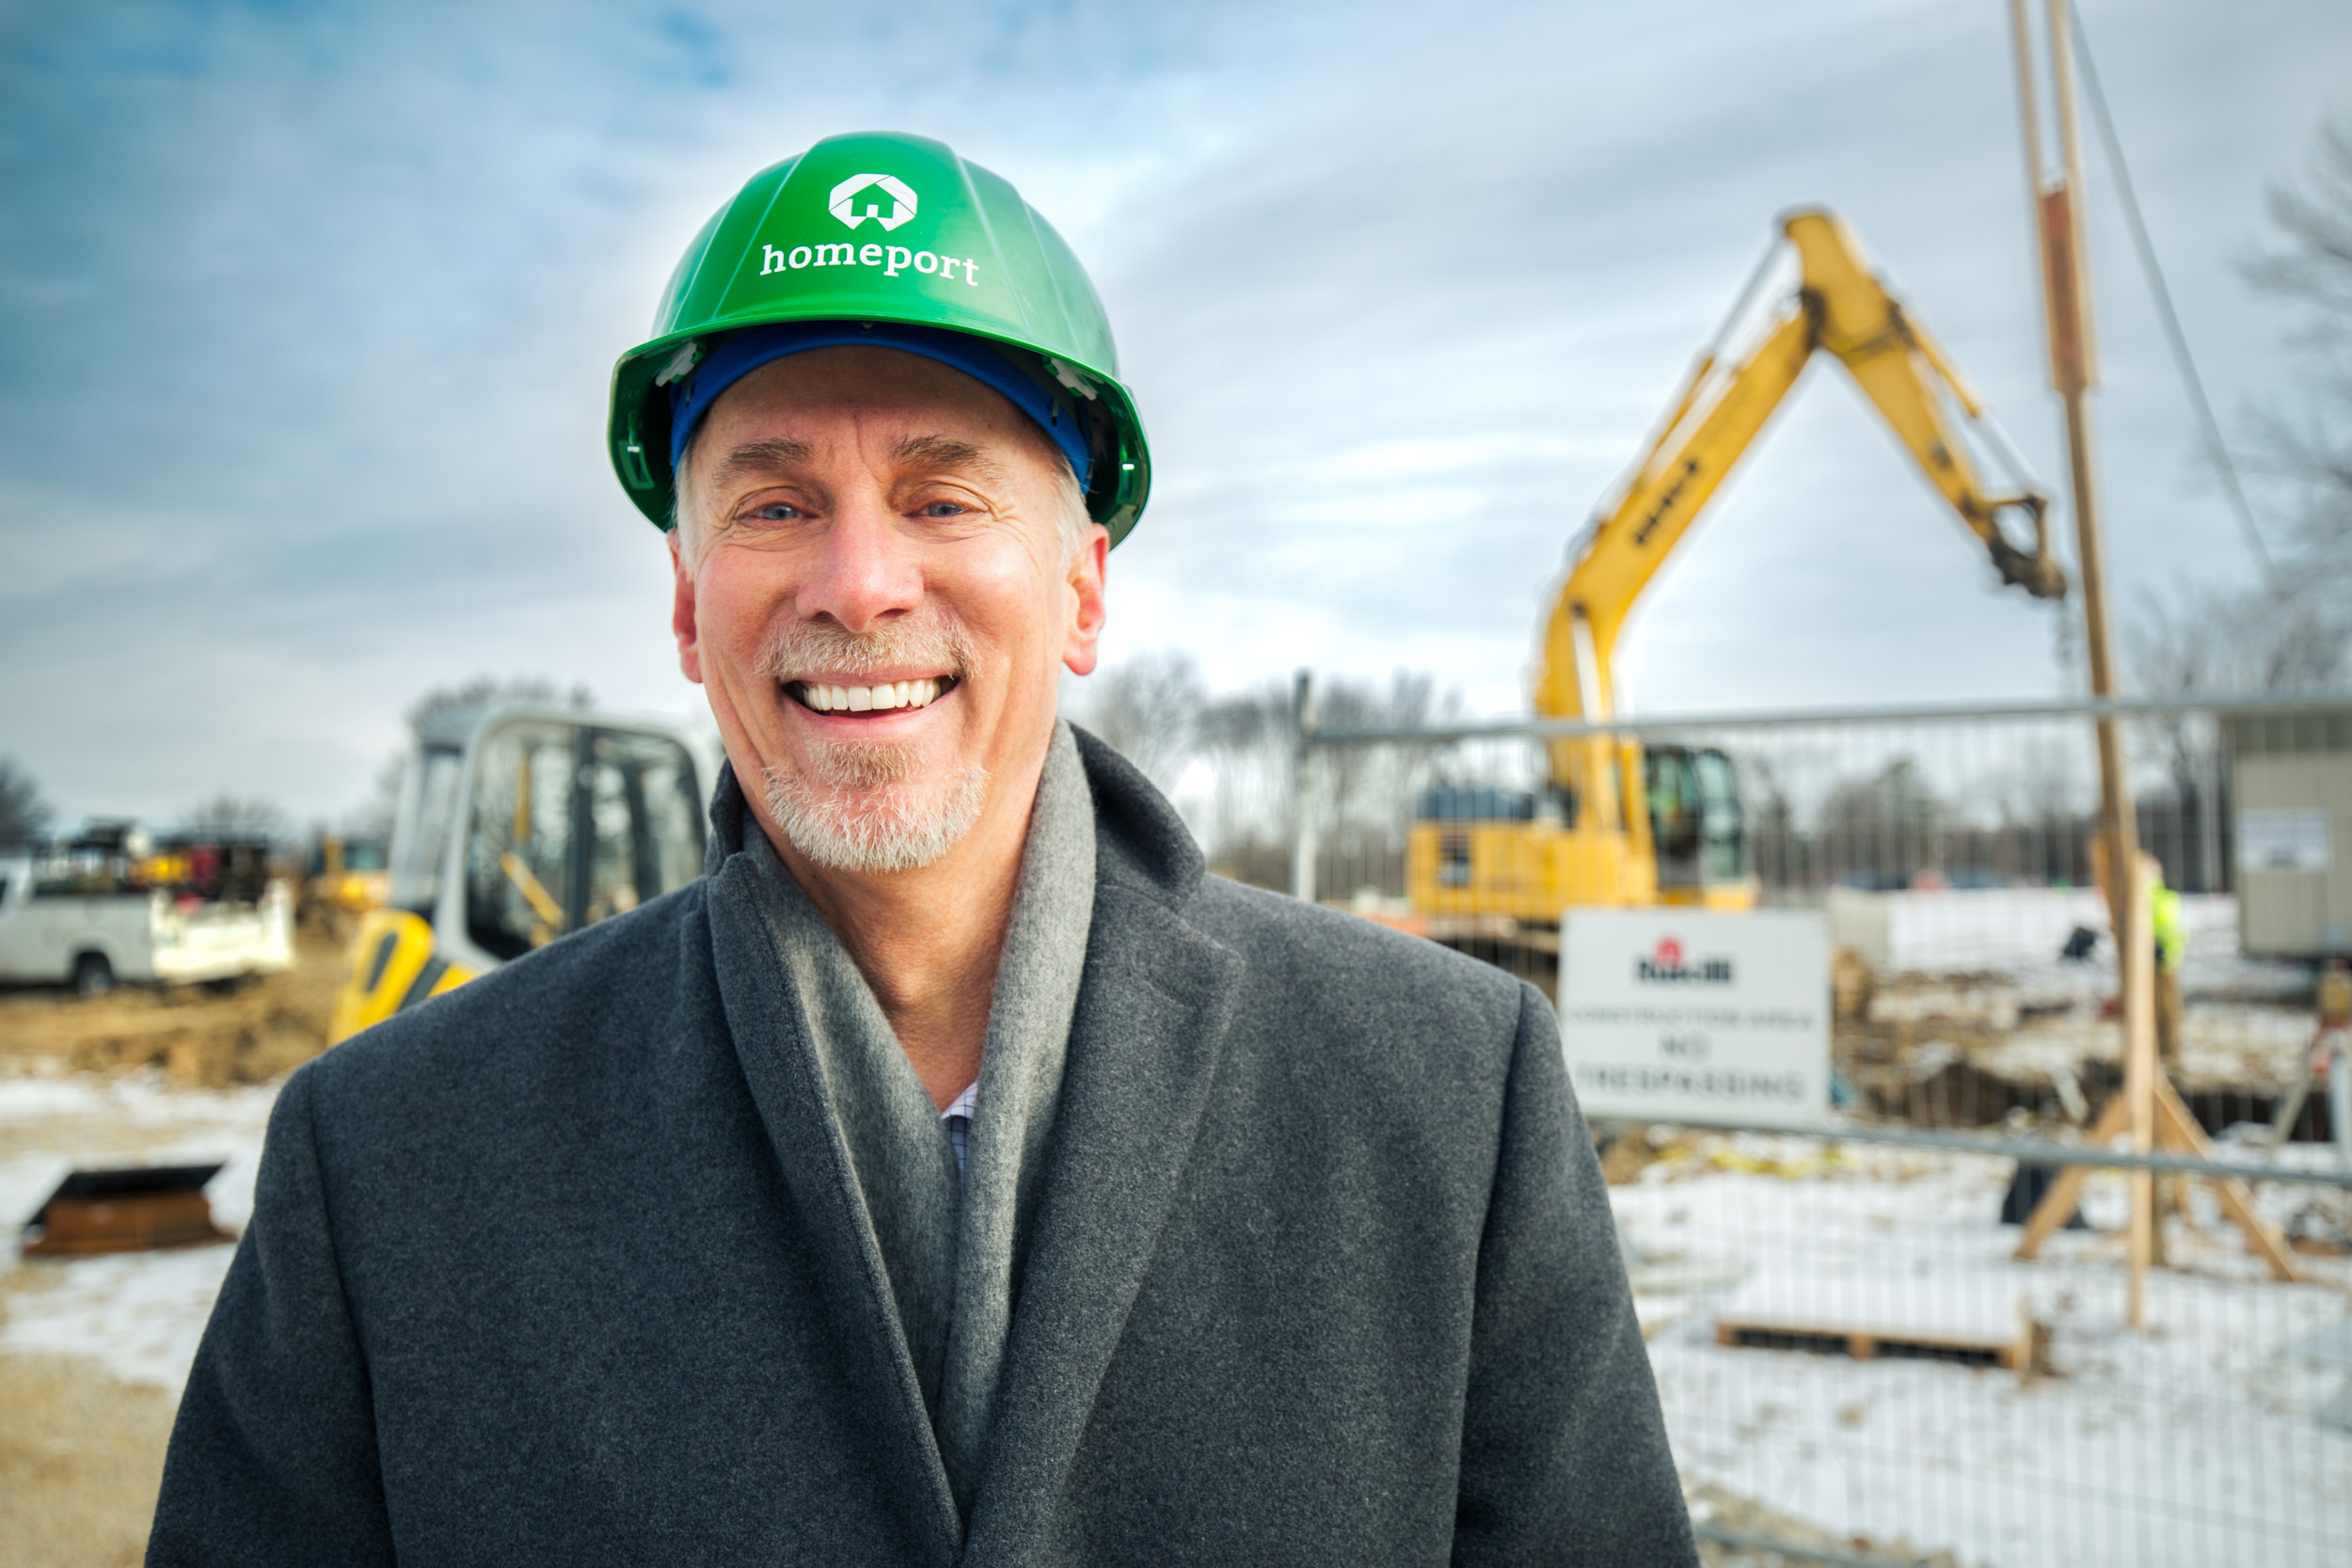 Mark McCullough, AEP Executive Vice President, Transmission, at construction site of Homeport's Blacklick Crossing development in Reynoldsburg. Photos by Caitlin Sadler/AEP.